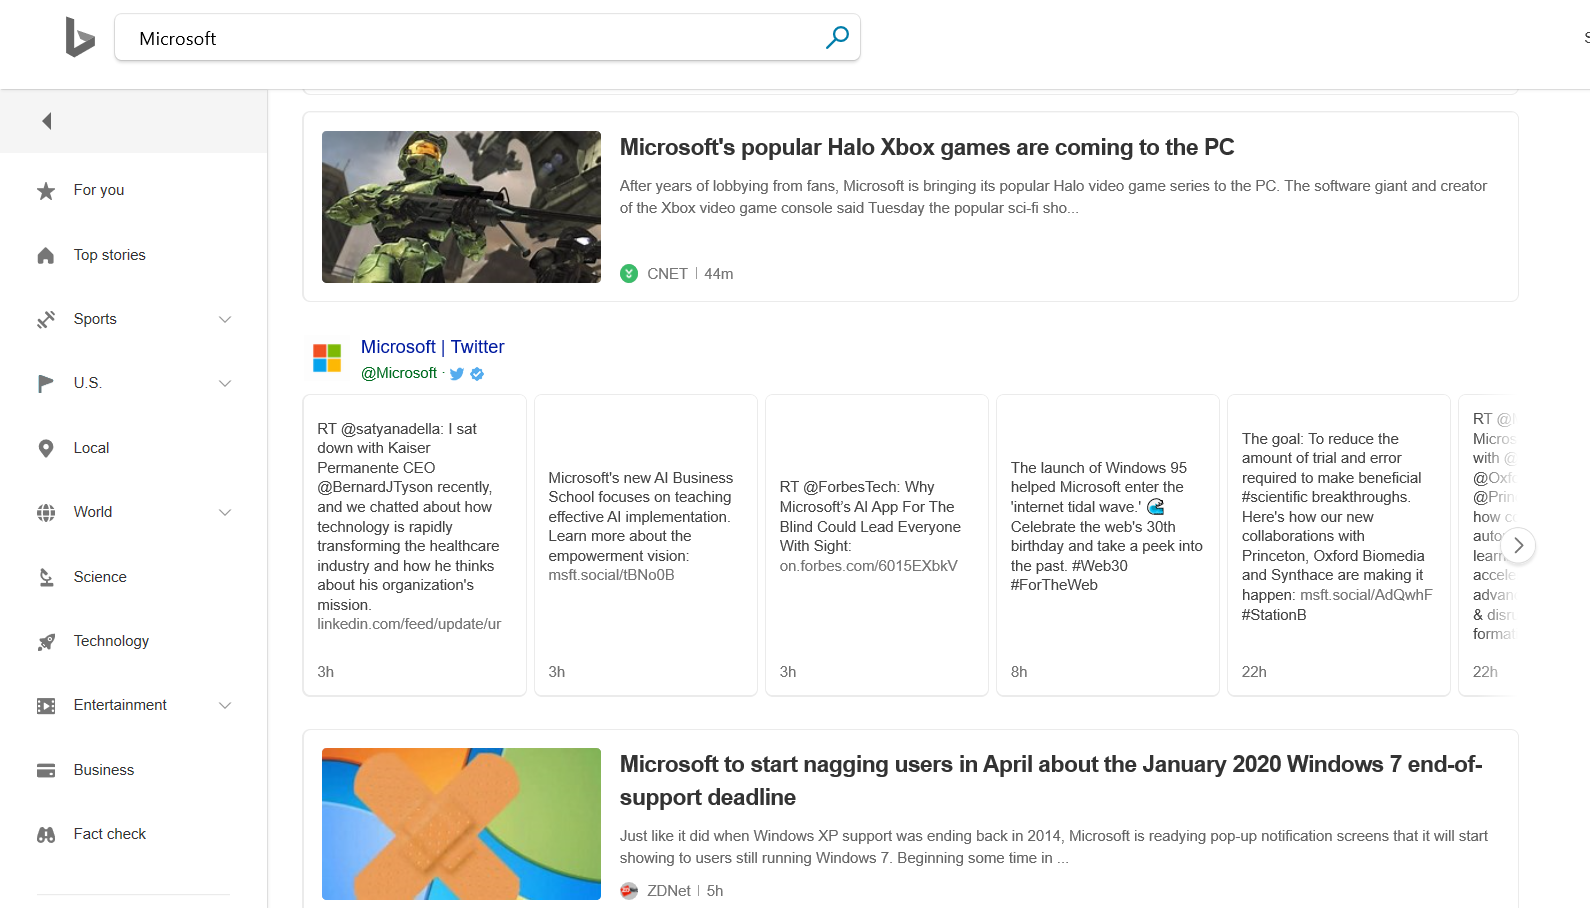 Bing News Search Example